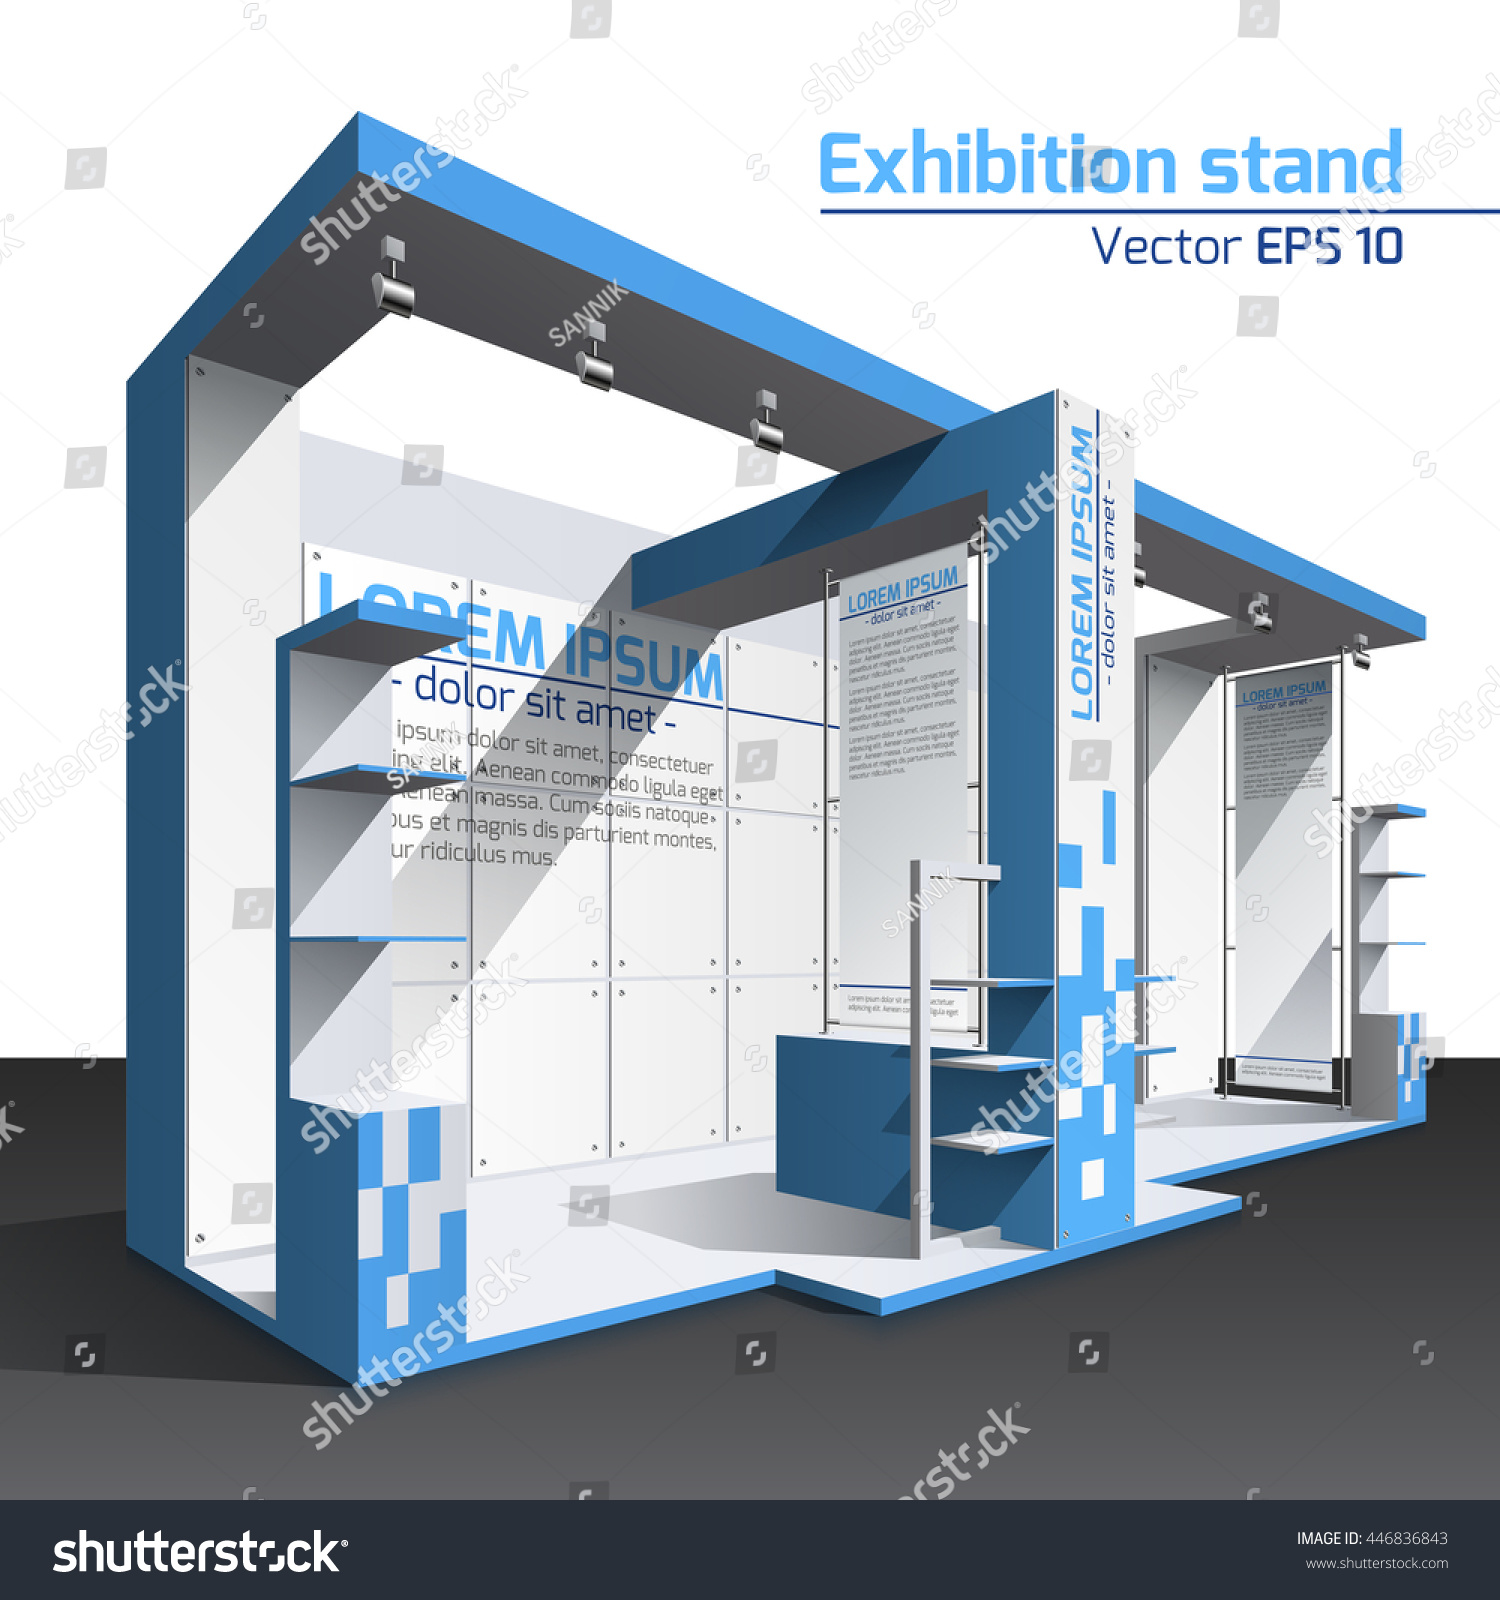 Simple Exhibition Stand Vector : Realistic vector exhibition stand design blue stock